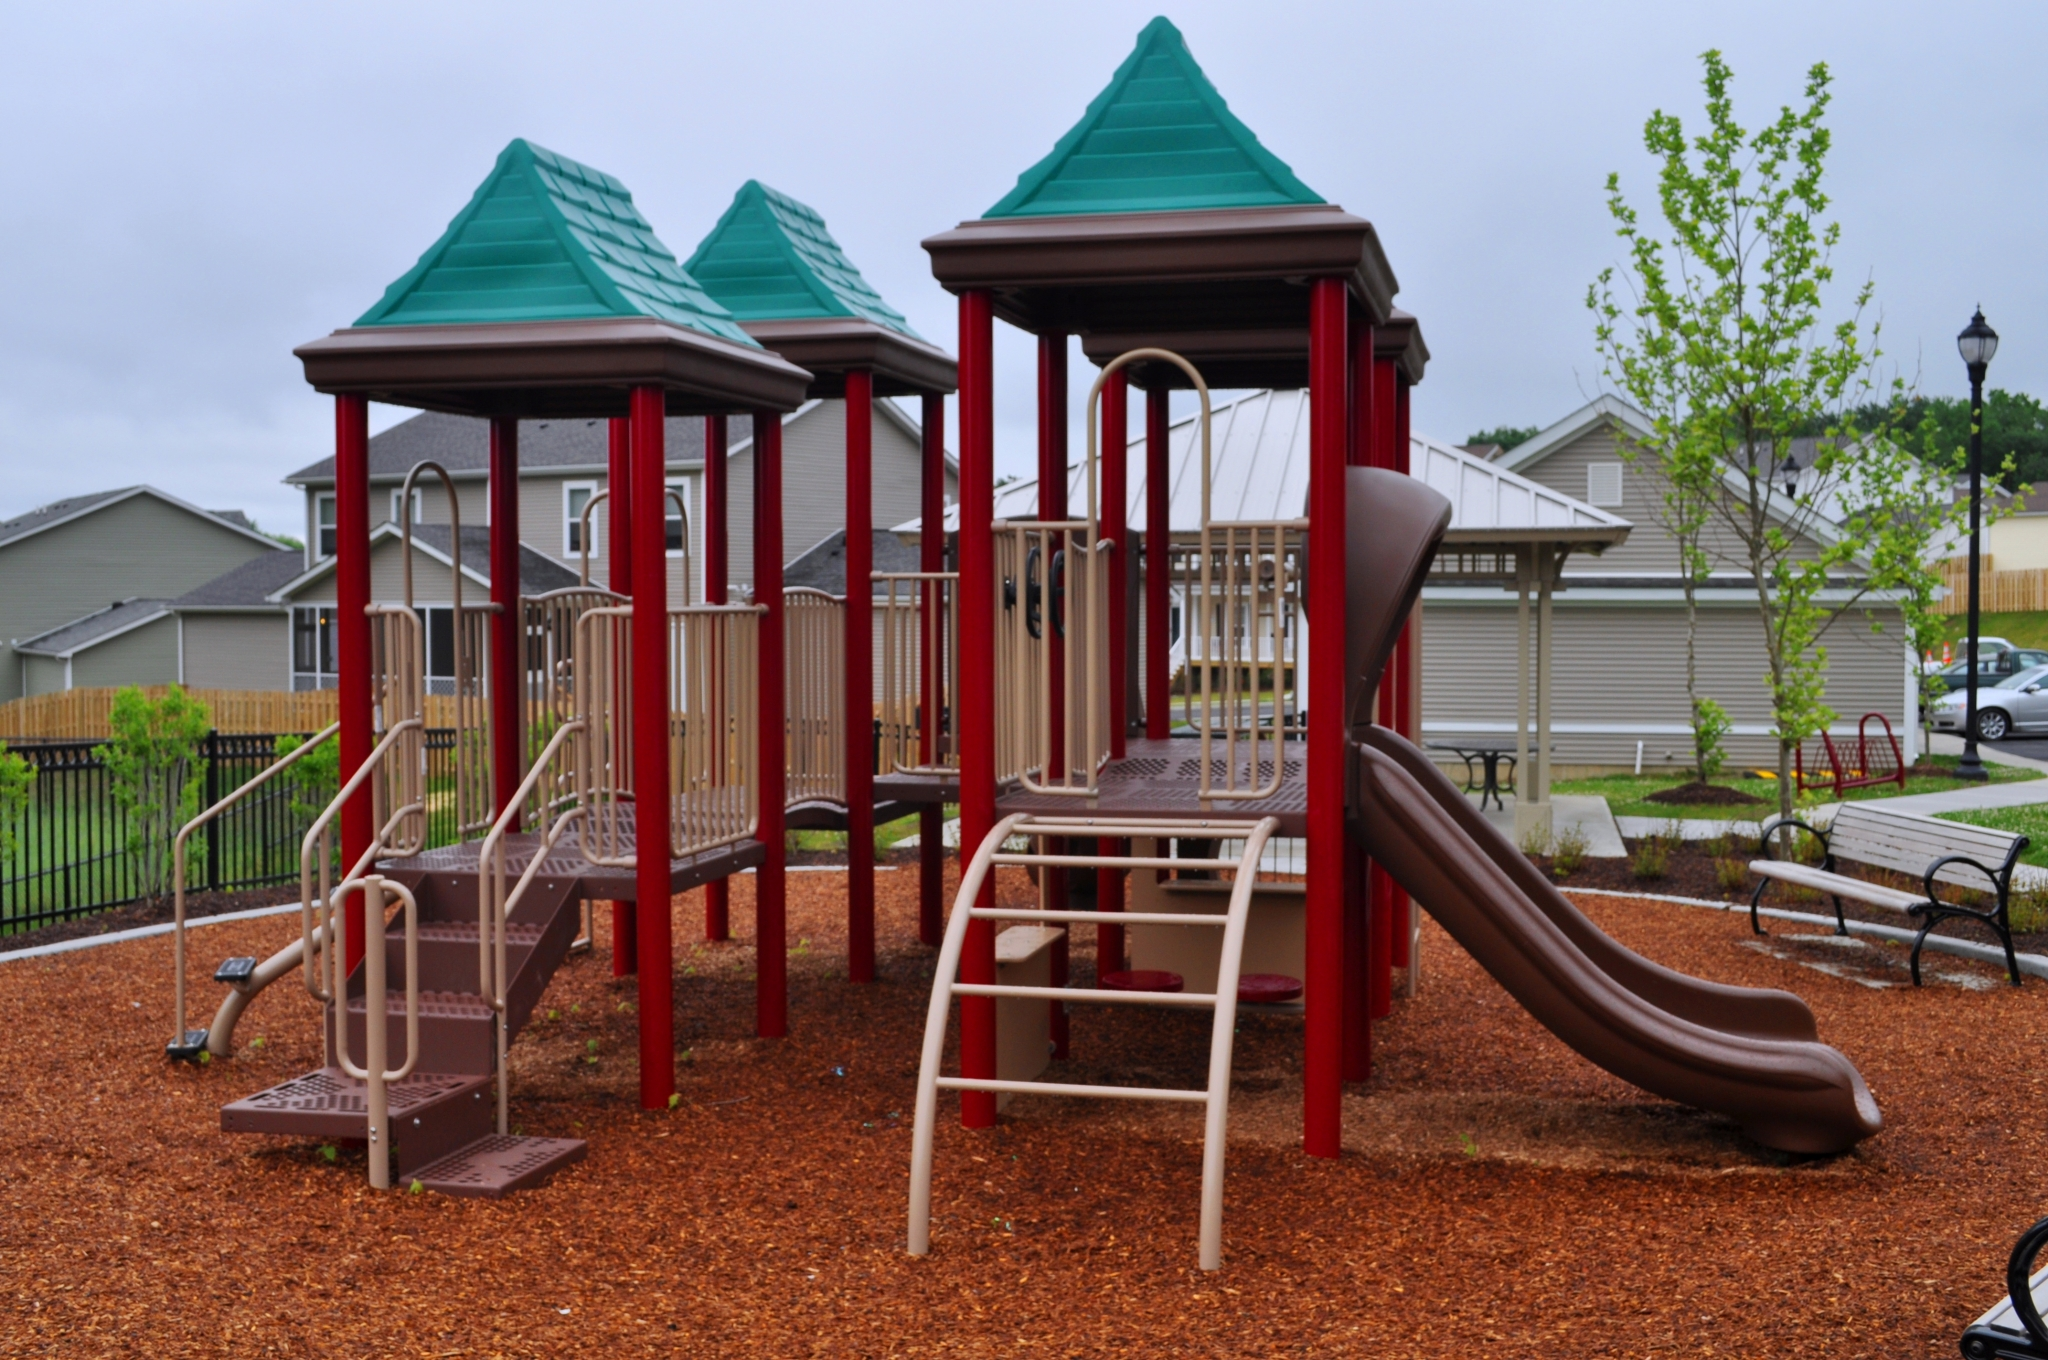 Resident Amenity | Outside Playground | Wood Chips